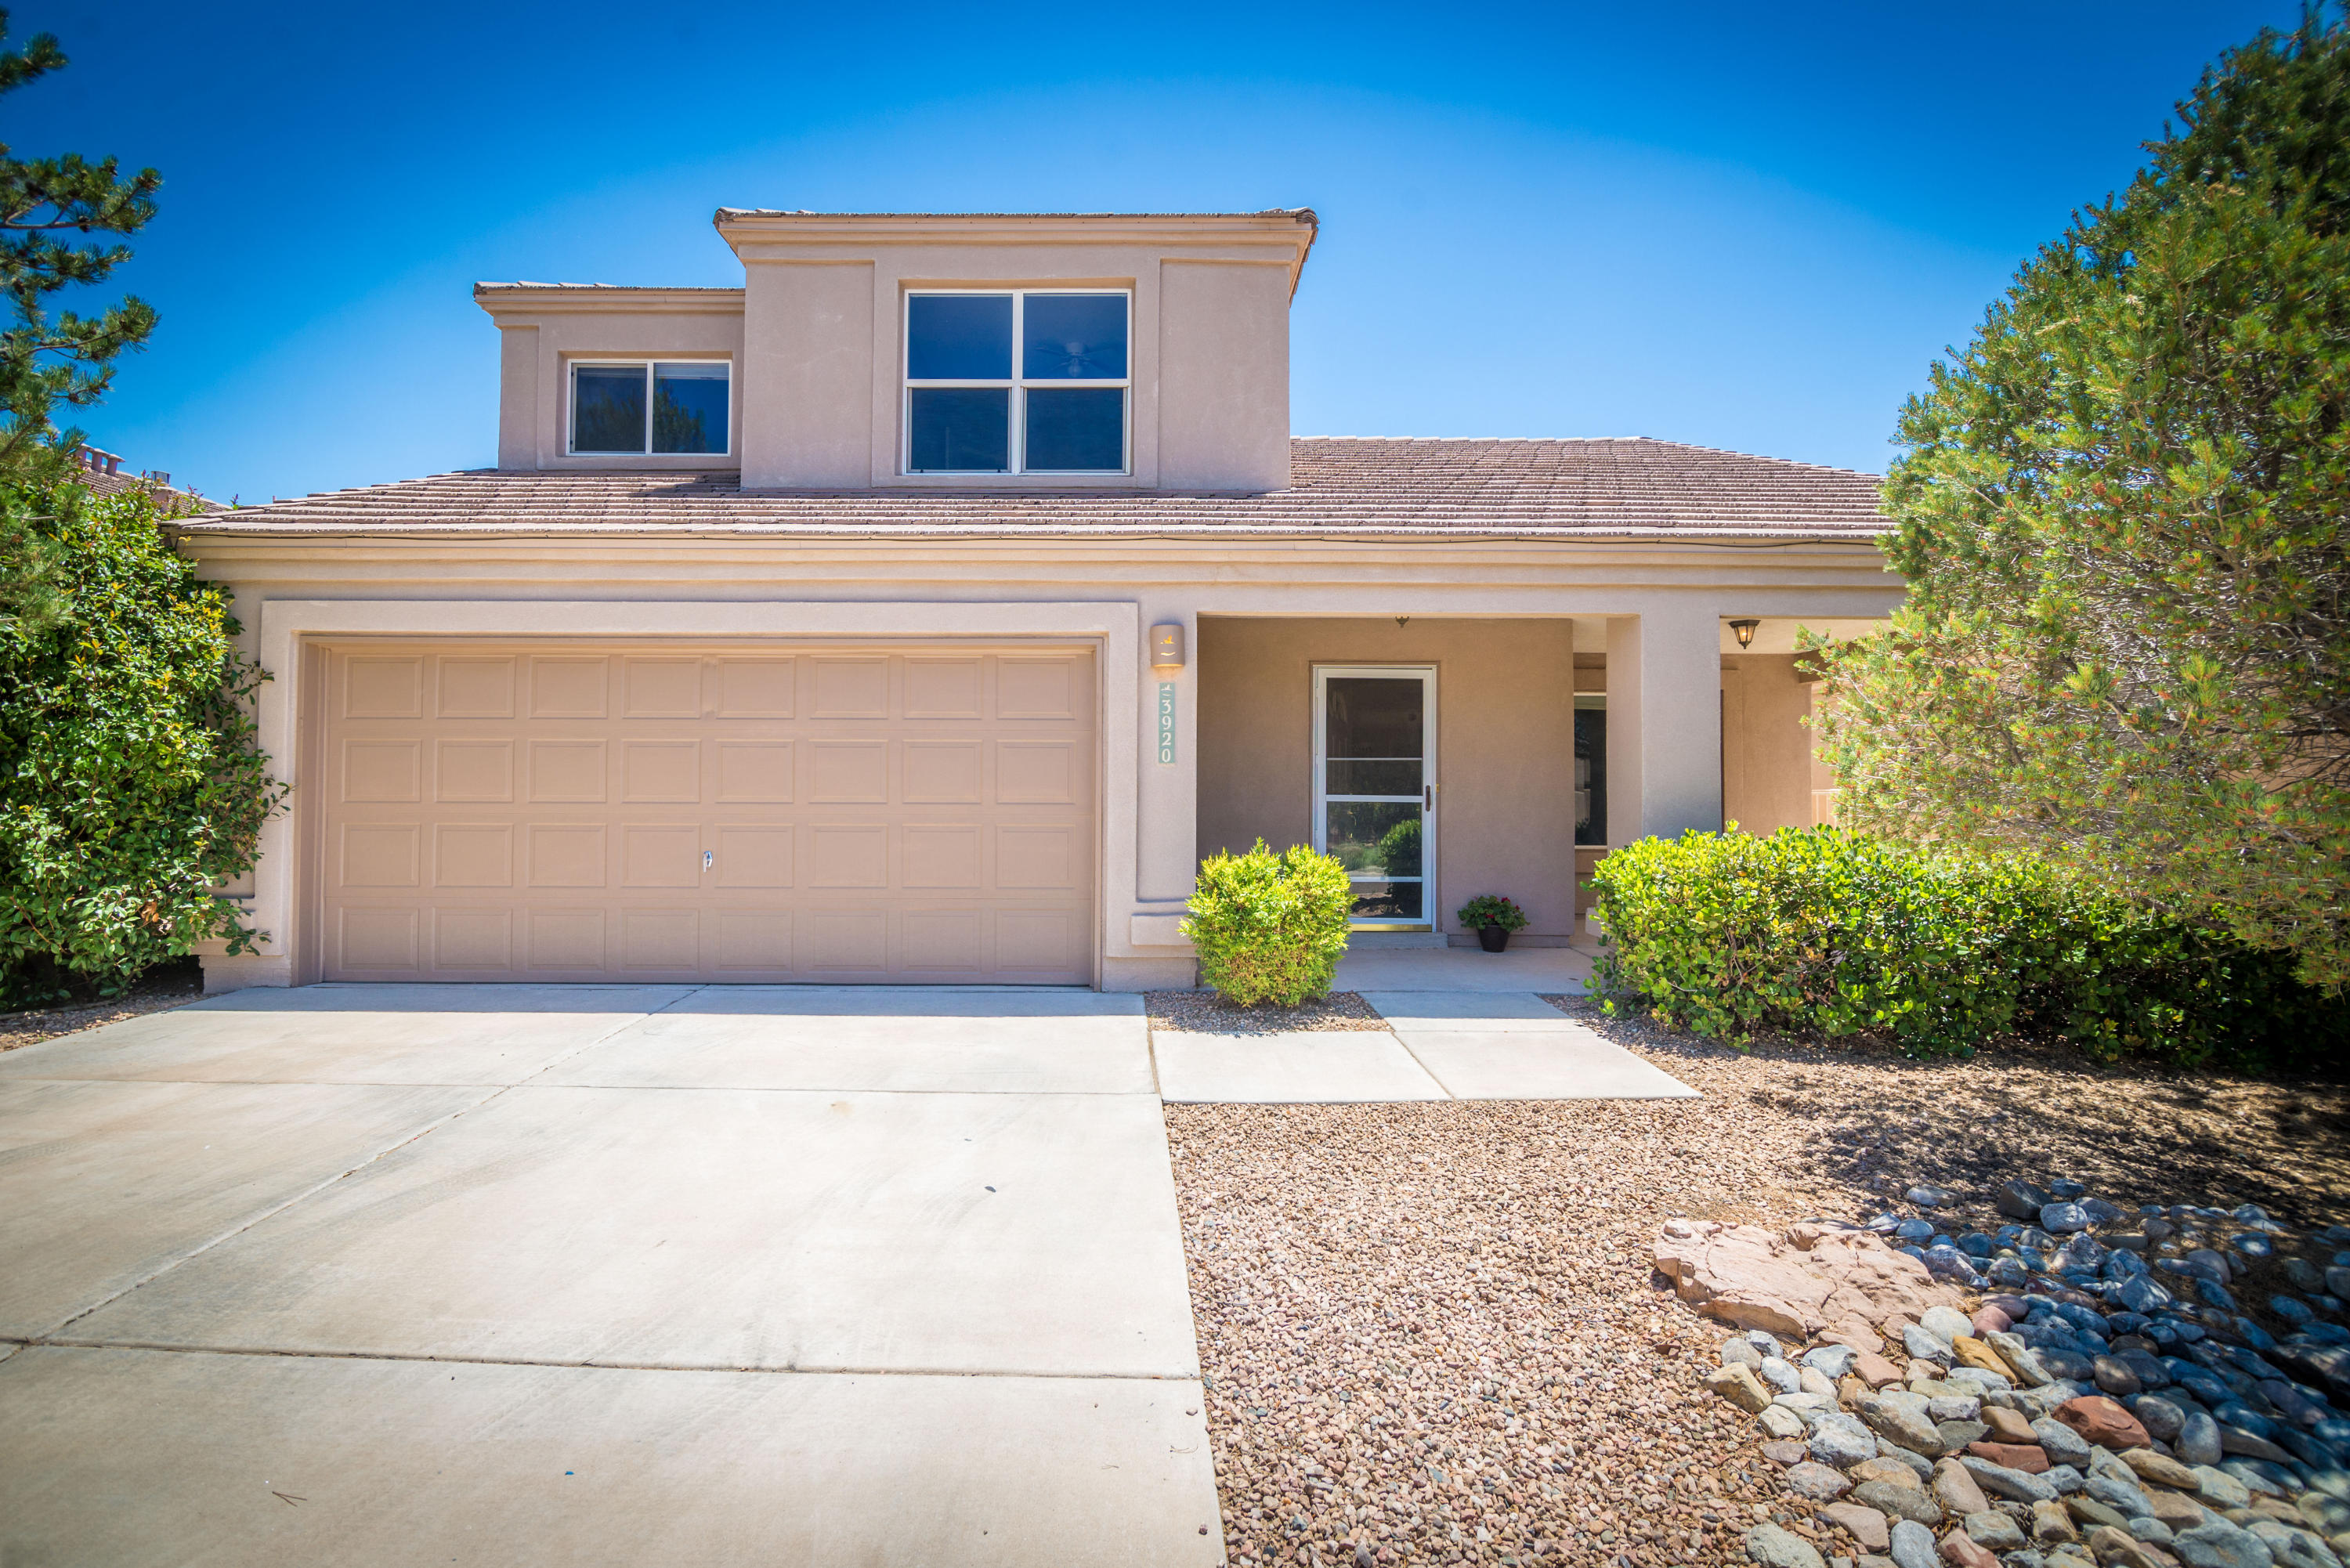 Northwest Albuquerque and Northwest Heights Homes for Sale -  Two Story,  3920 NW Tundra Swan Court